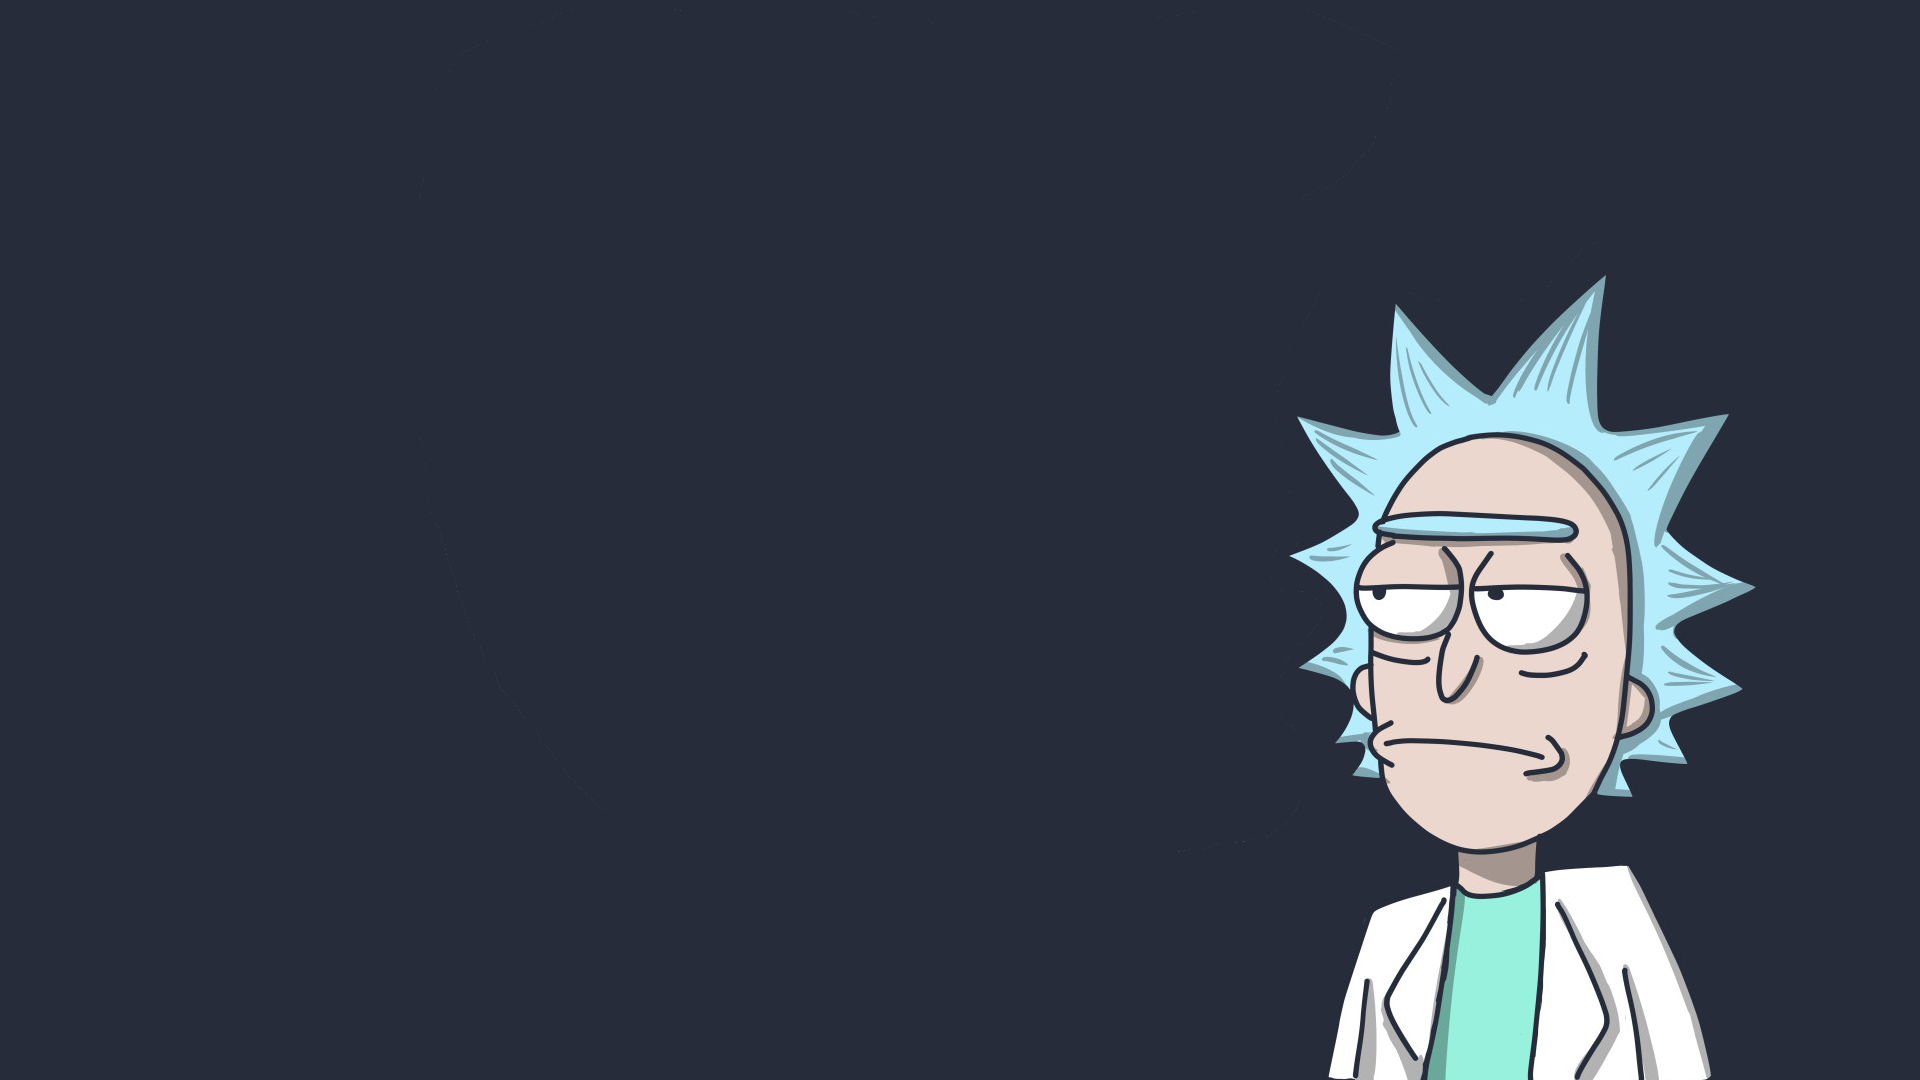 Rick and Morty HD Wallpapers Pictures Images and Photos 1920x1080